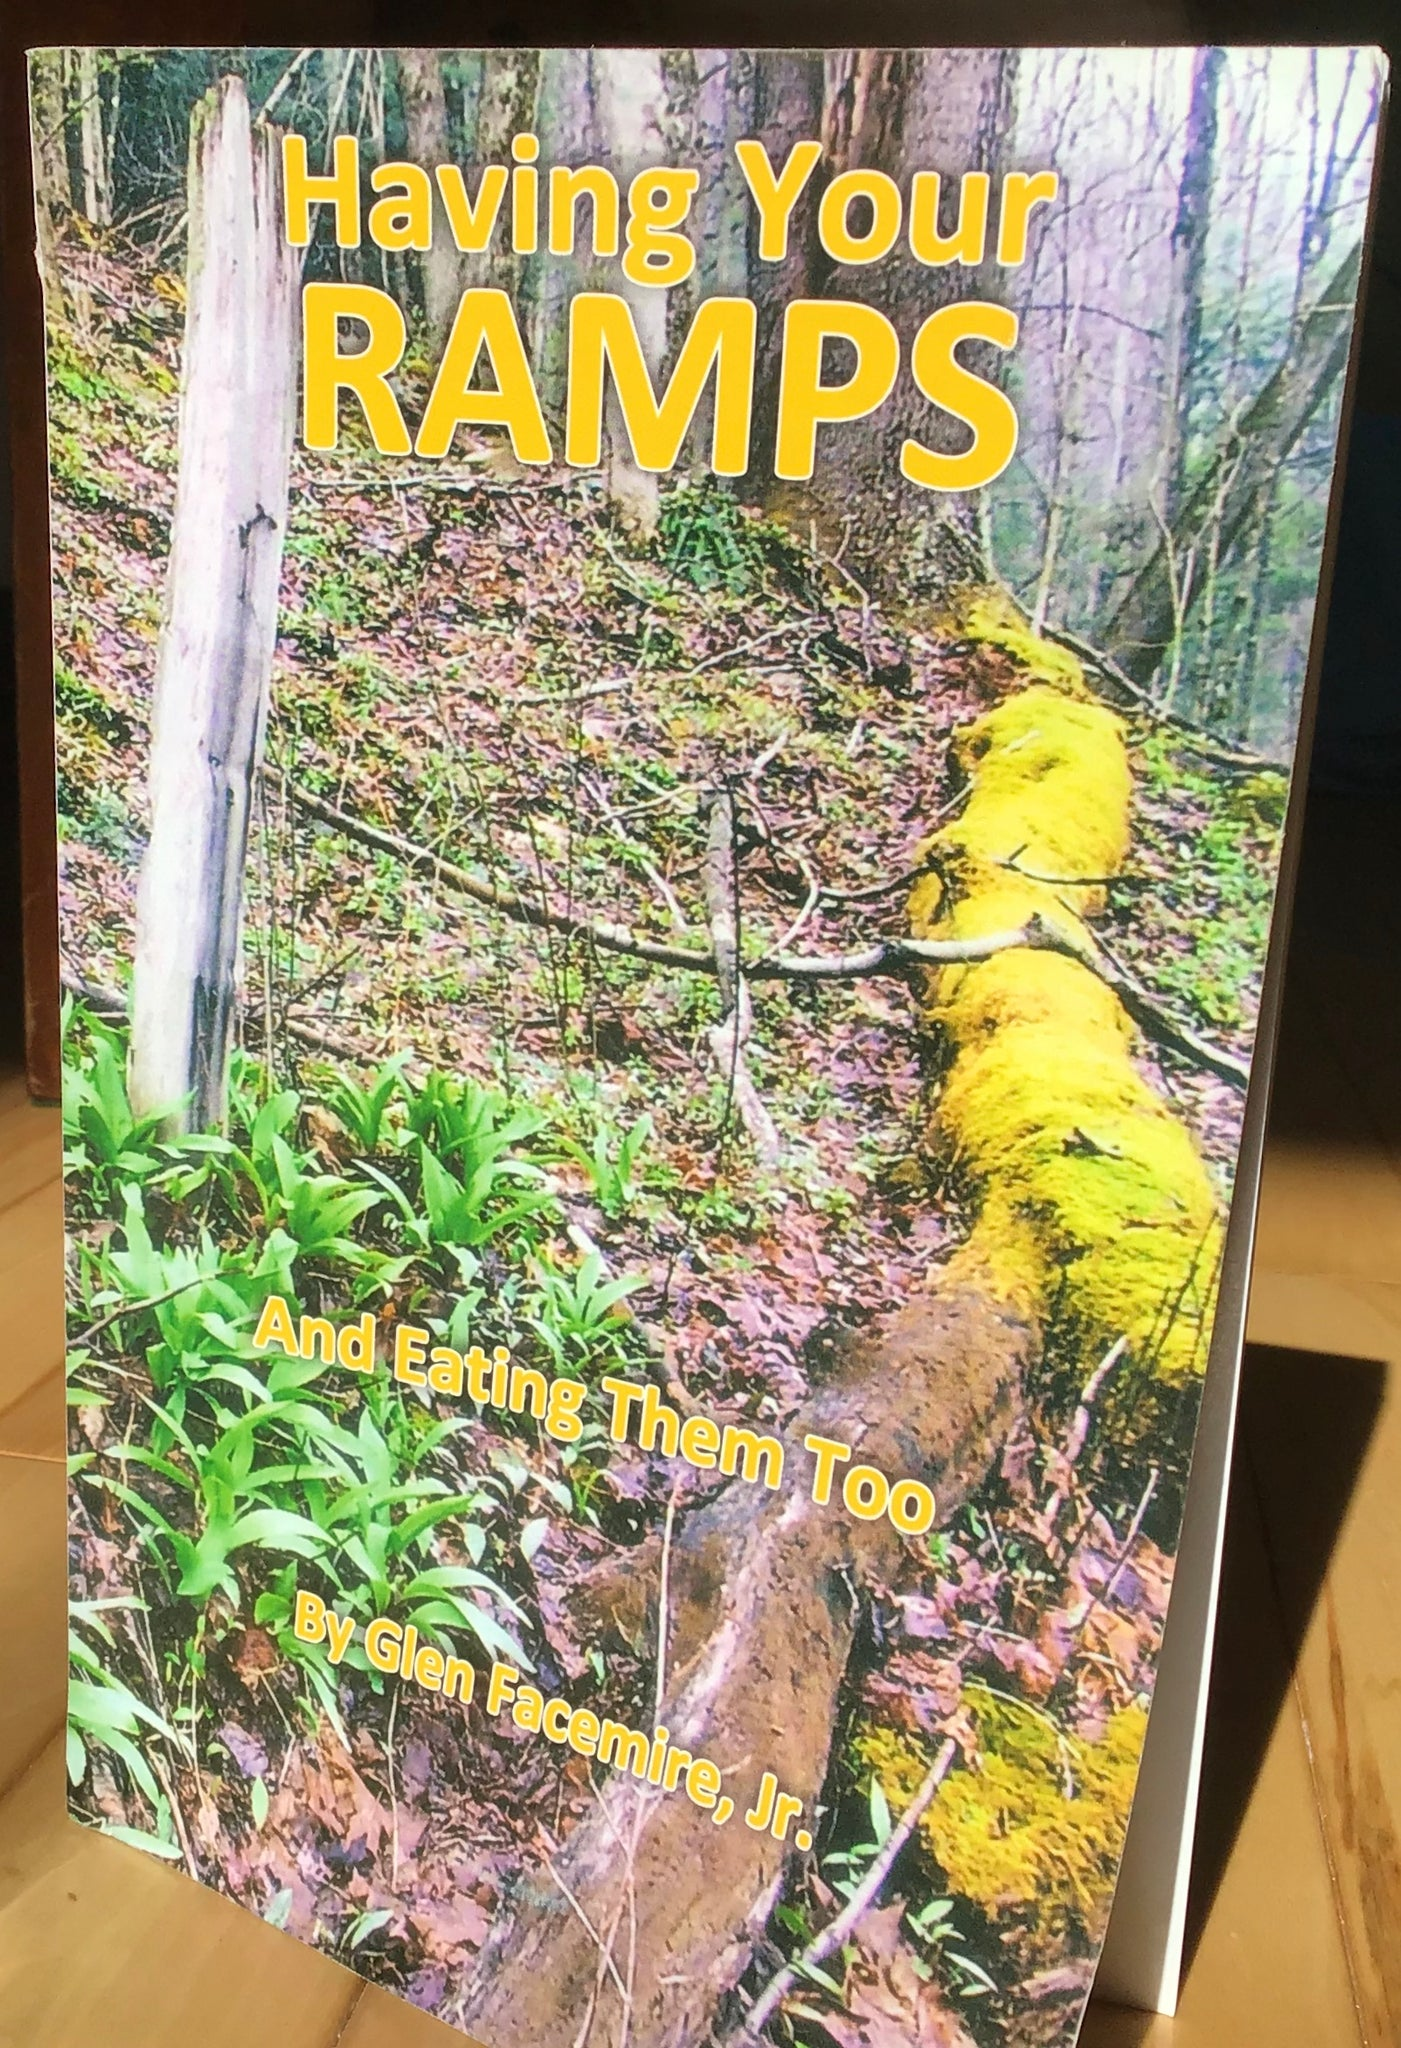 Having Your Ramps And Eating Them Too